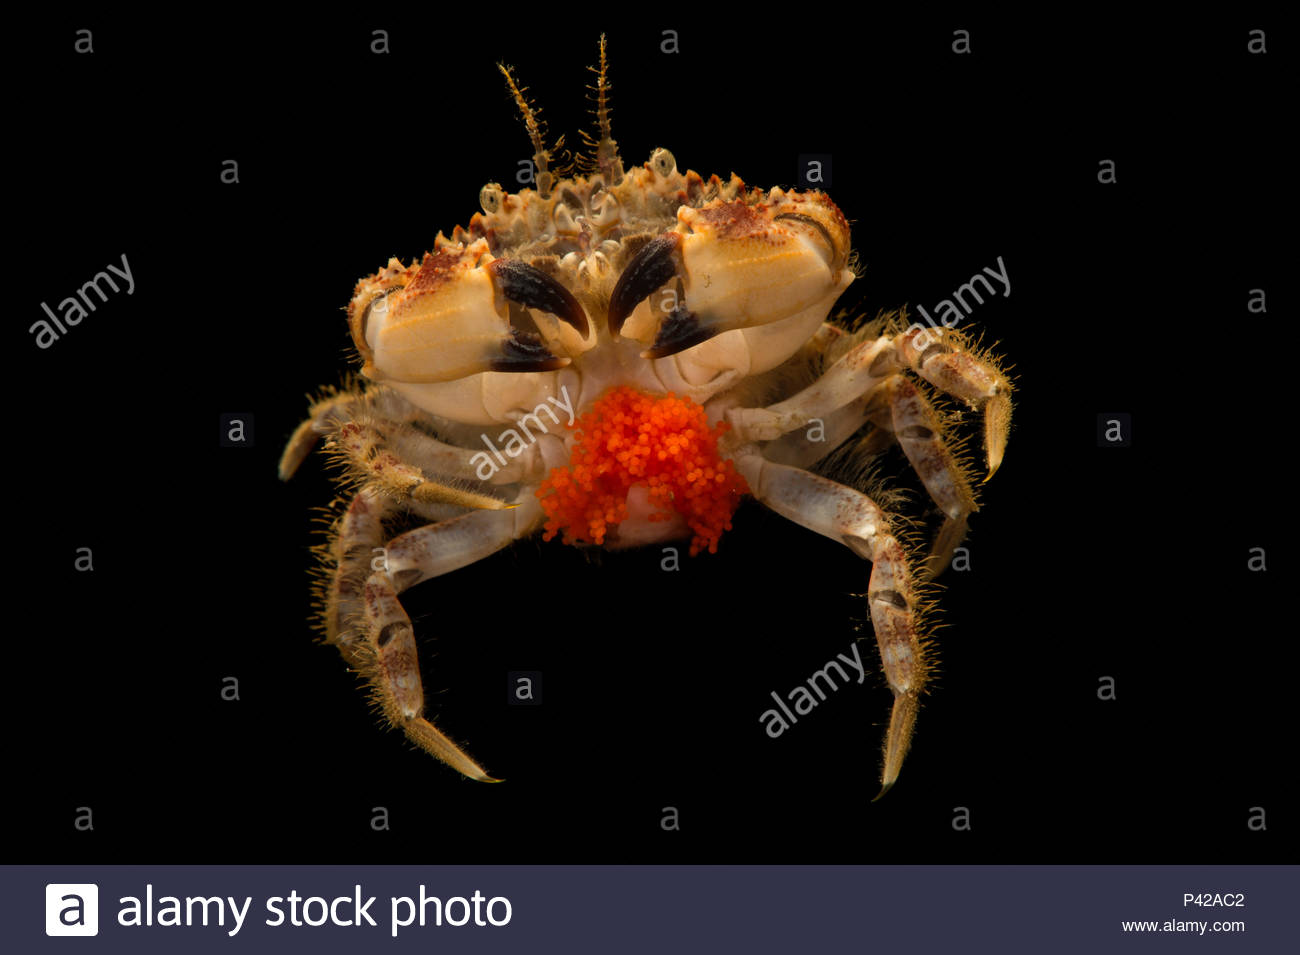 Pygmy rock crab, Glebocarcinus oregonensis, at the Alaska SeaLife Center. - Stock Image